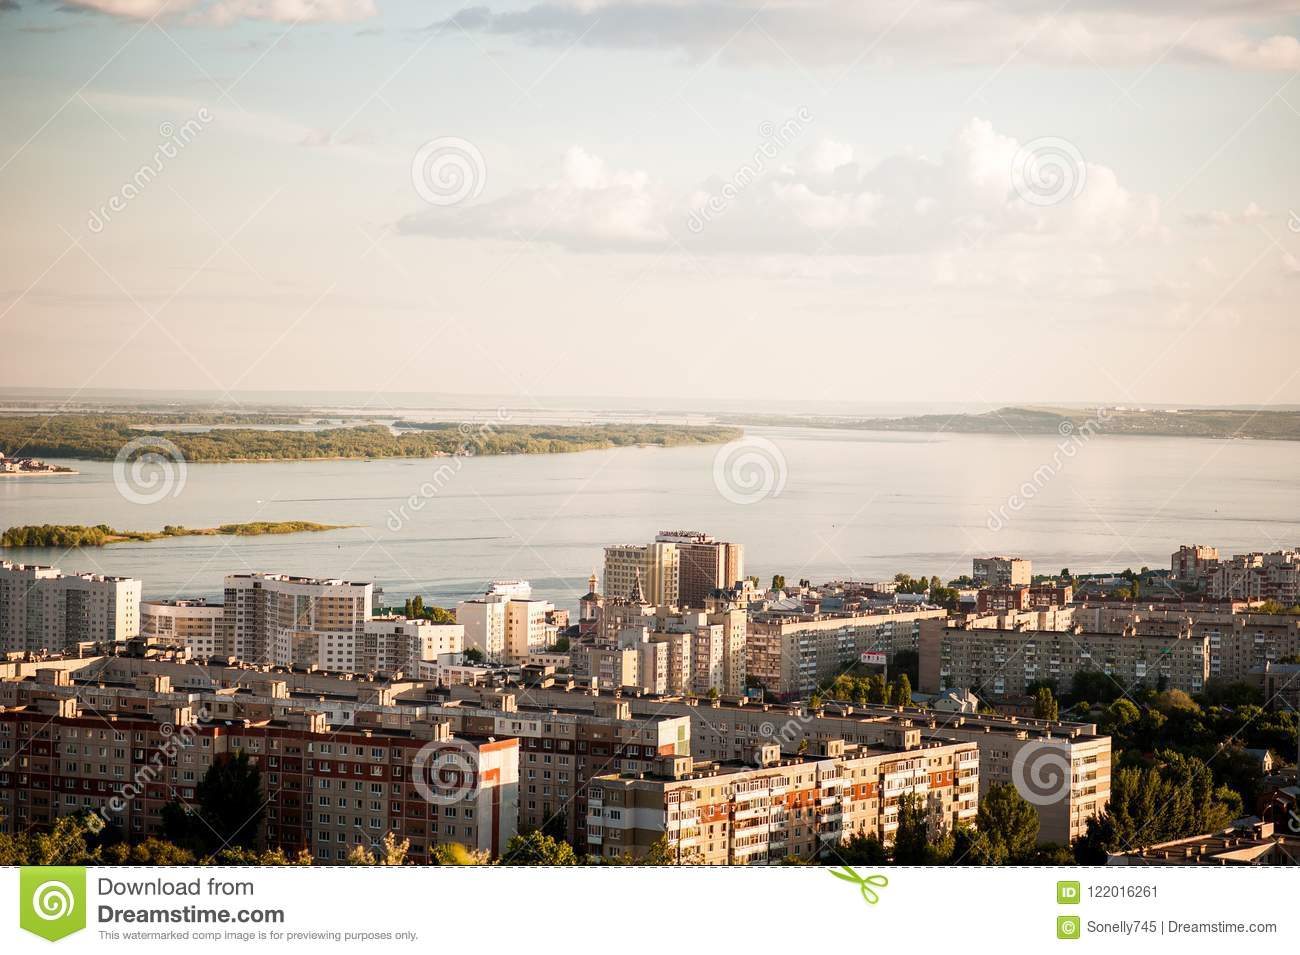 What area is Saratov in